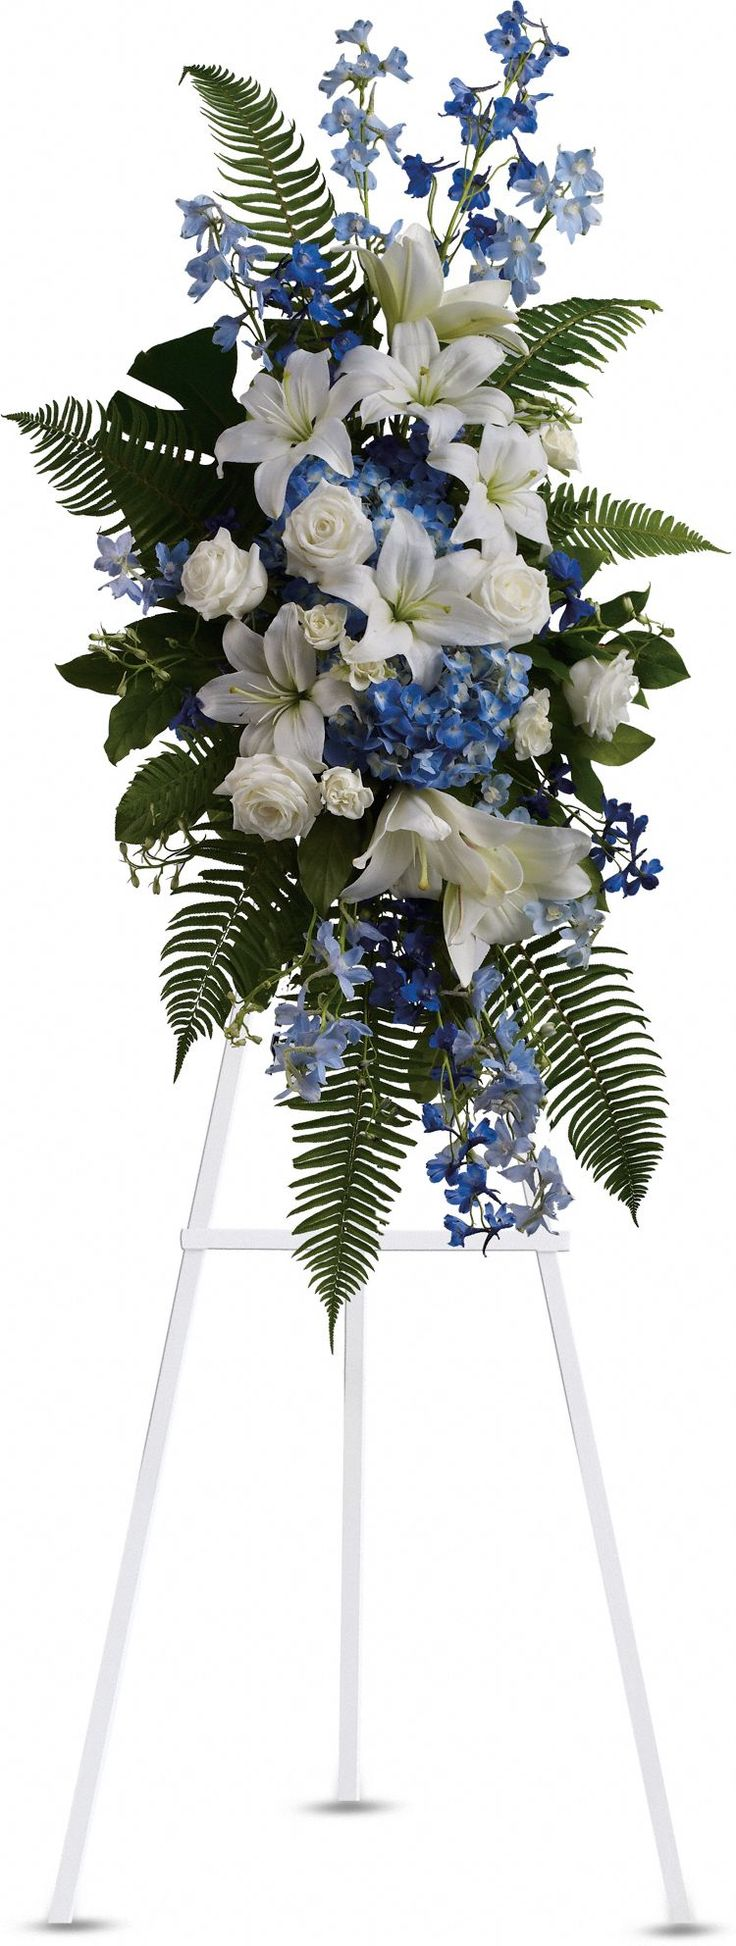 287 best casket sprays images on pinterest floral arrangements pinner saidocean breeze spray i am going to create this tomorrow for a funeral floral arrangementsfuneral flowersfuneral izmirmasajfo